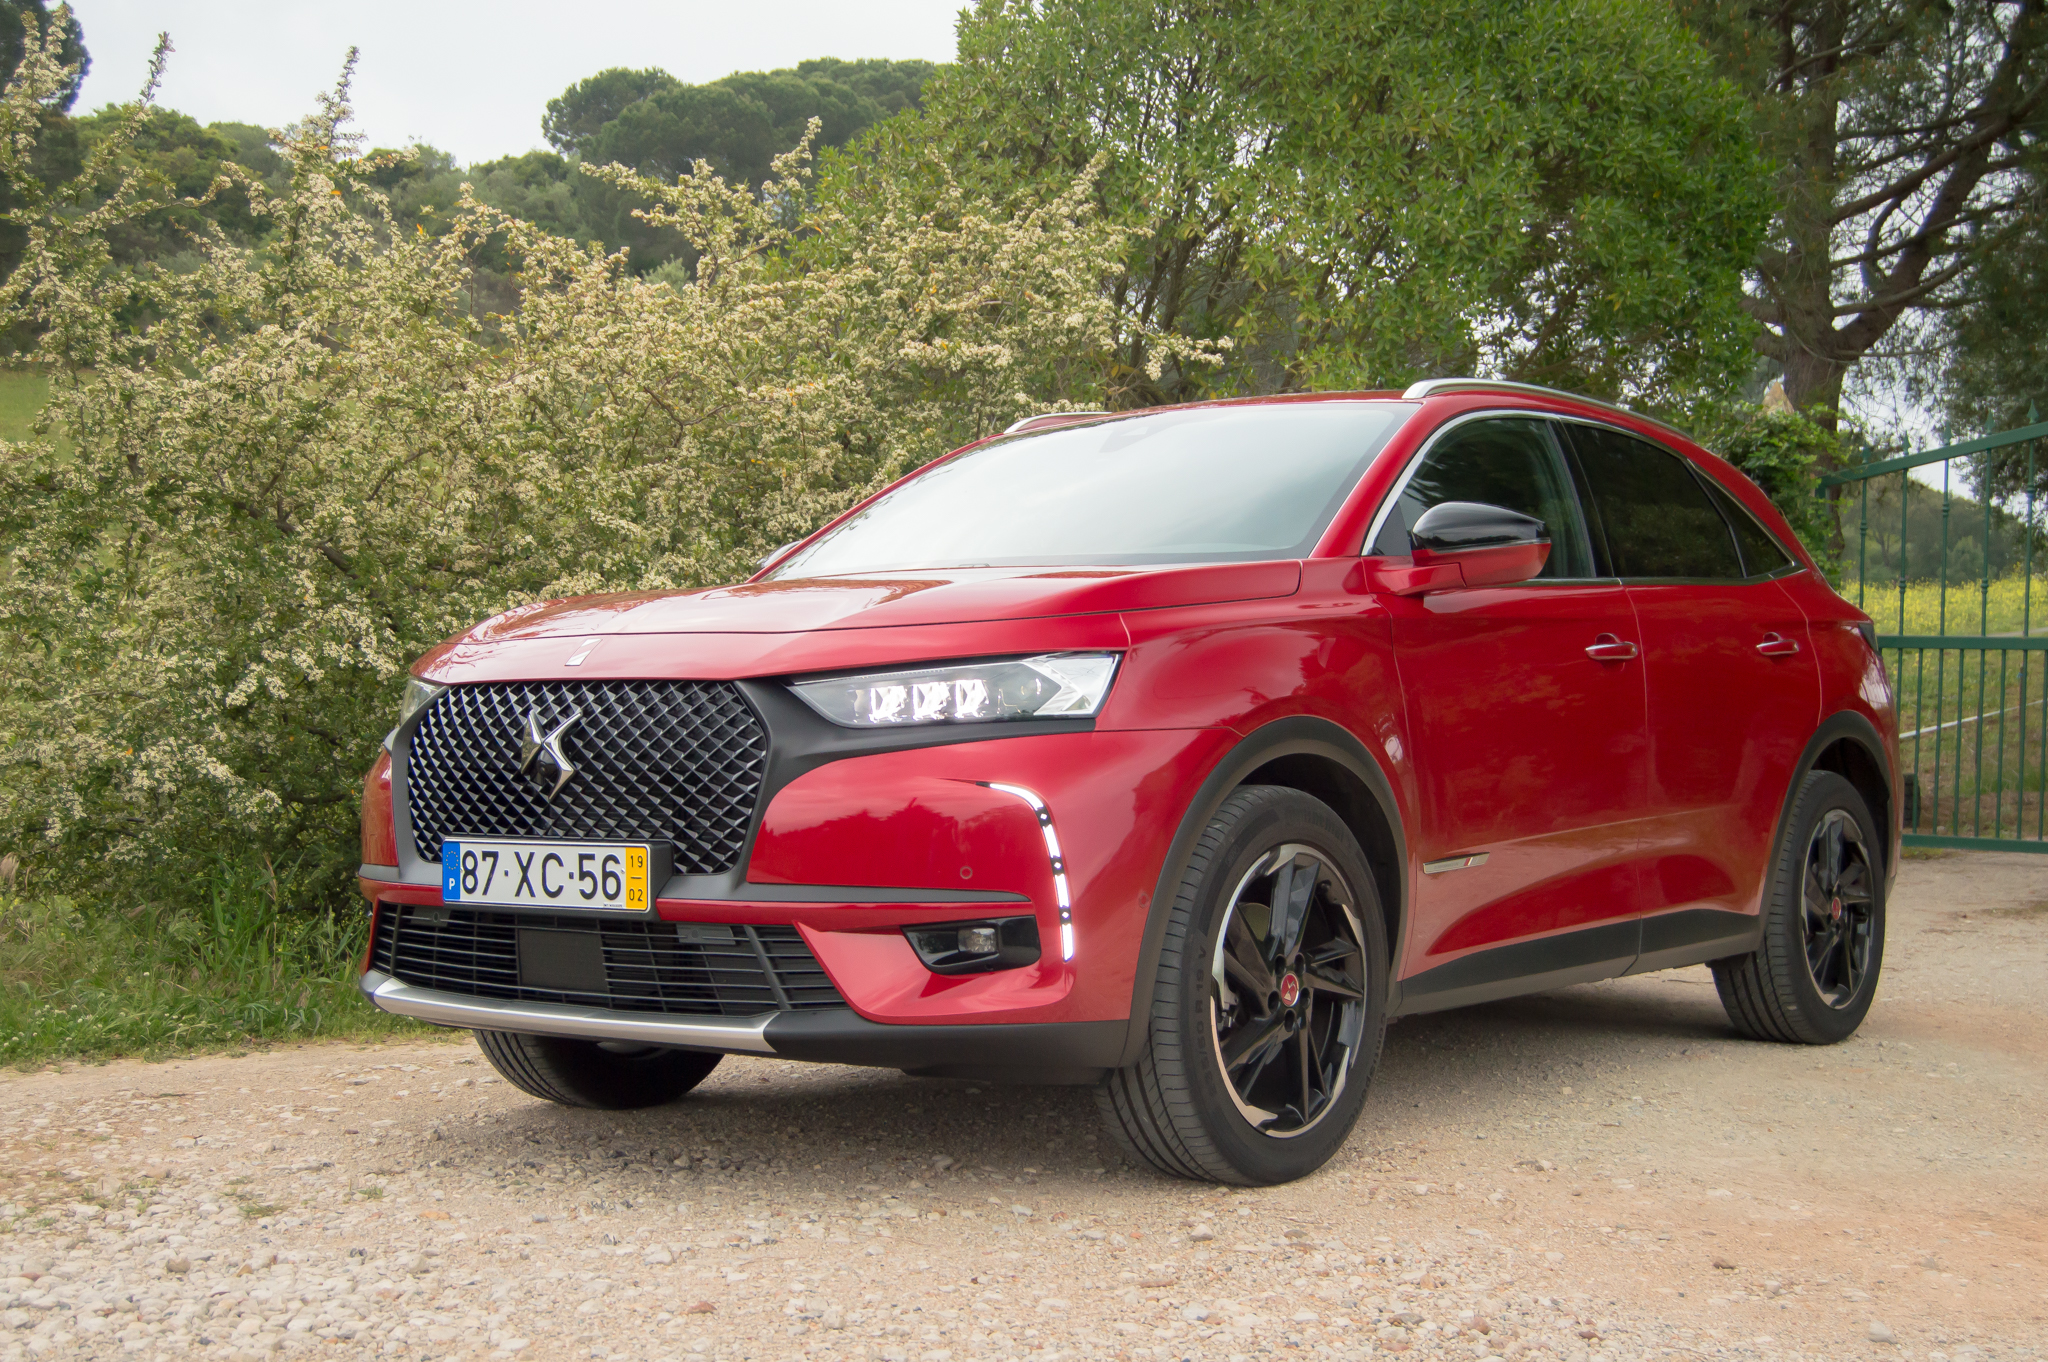 DS7 Crossback 1.5 BlueHDi Performance Line